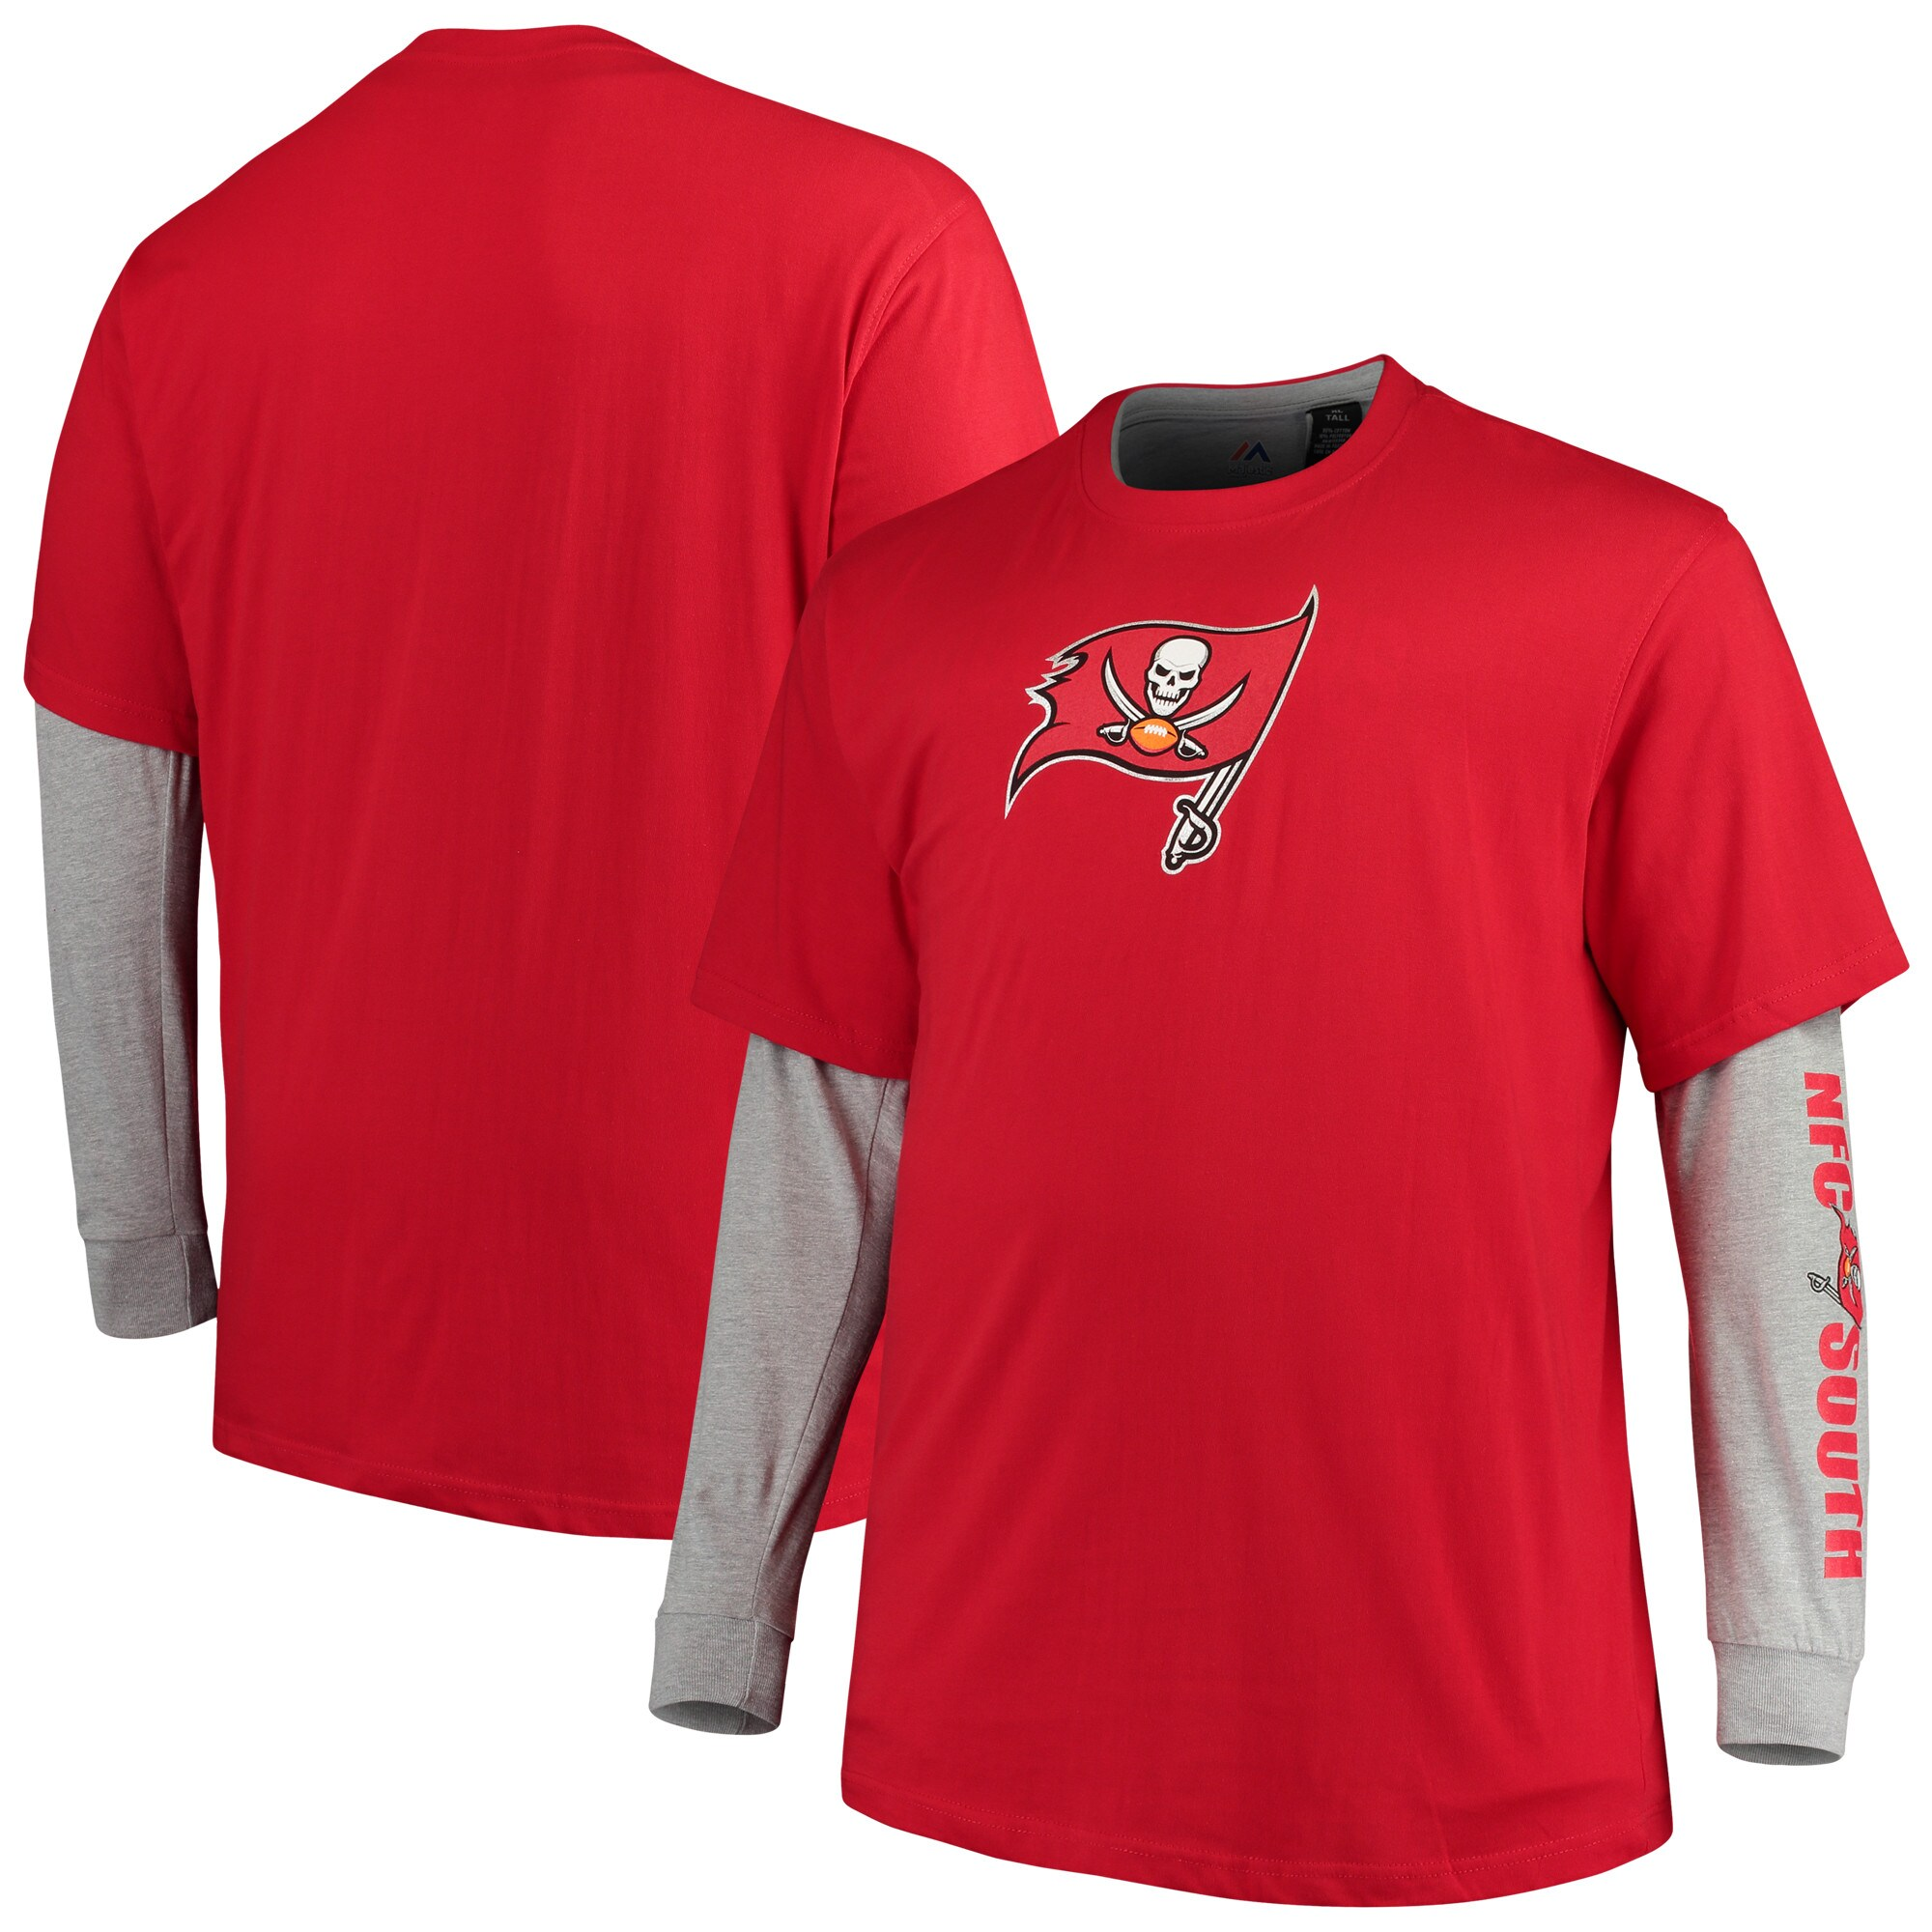 Tampa Bay Buccaneers Majestic Big & Tall T-Shirt Combo Set - Red/Heathered Gray